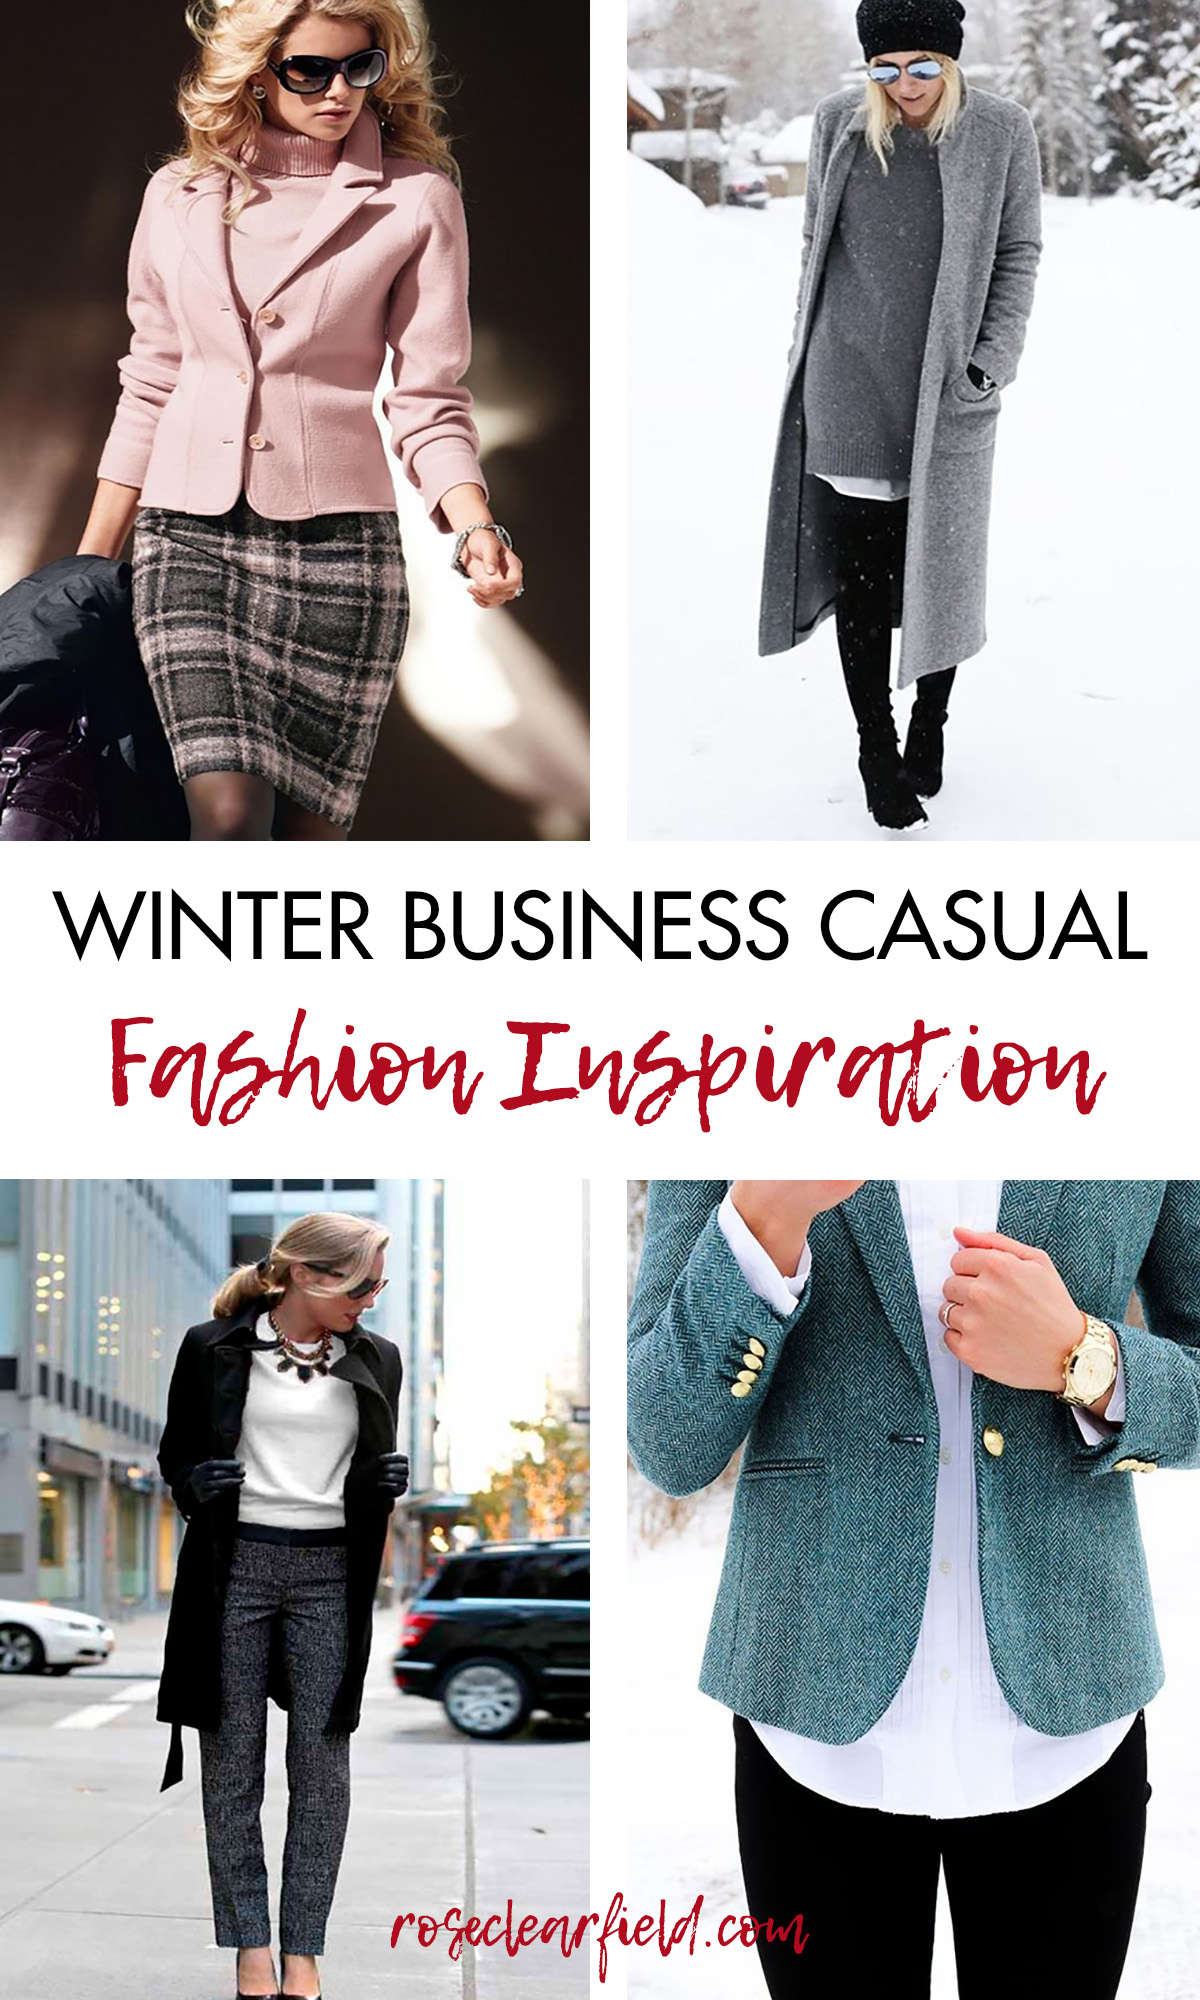 Women's Winter Business Casual Fashion Inspiration